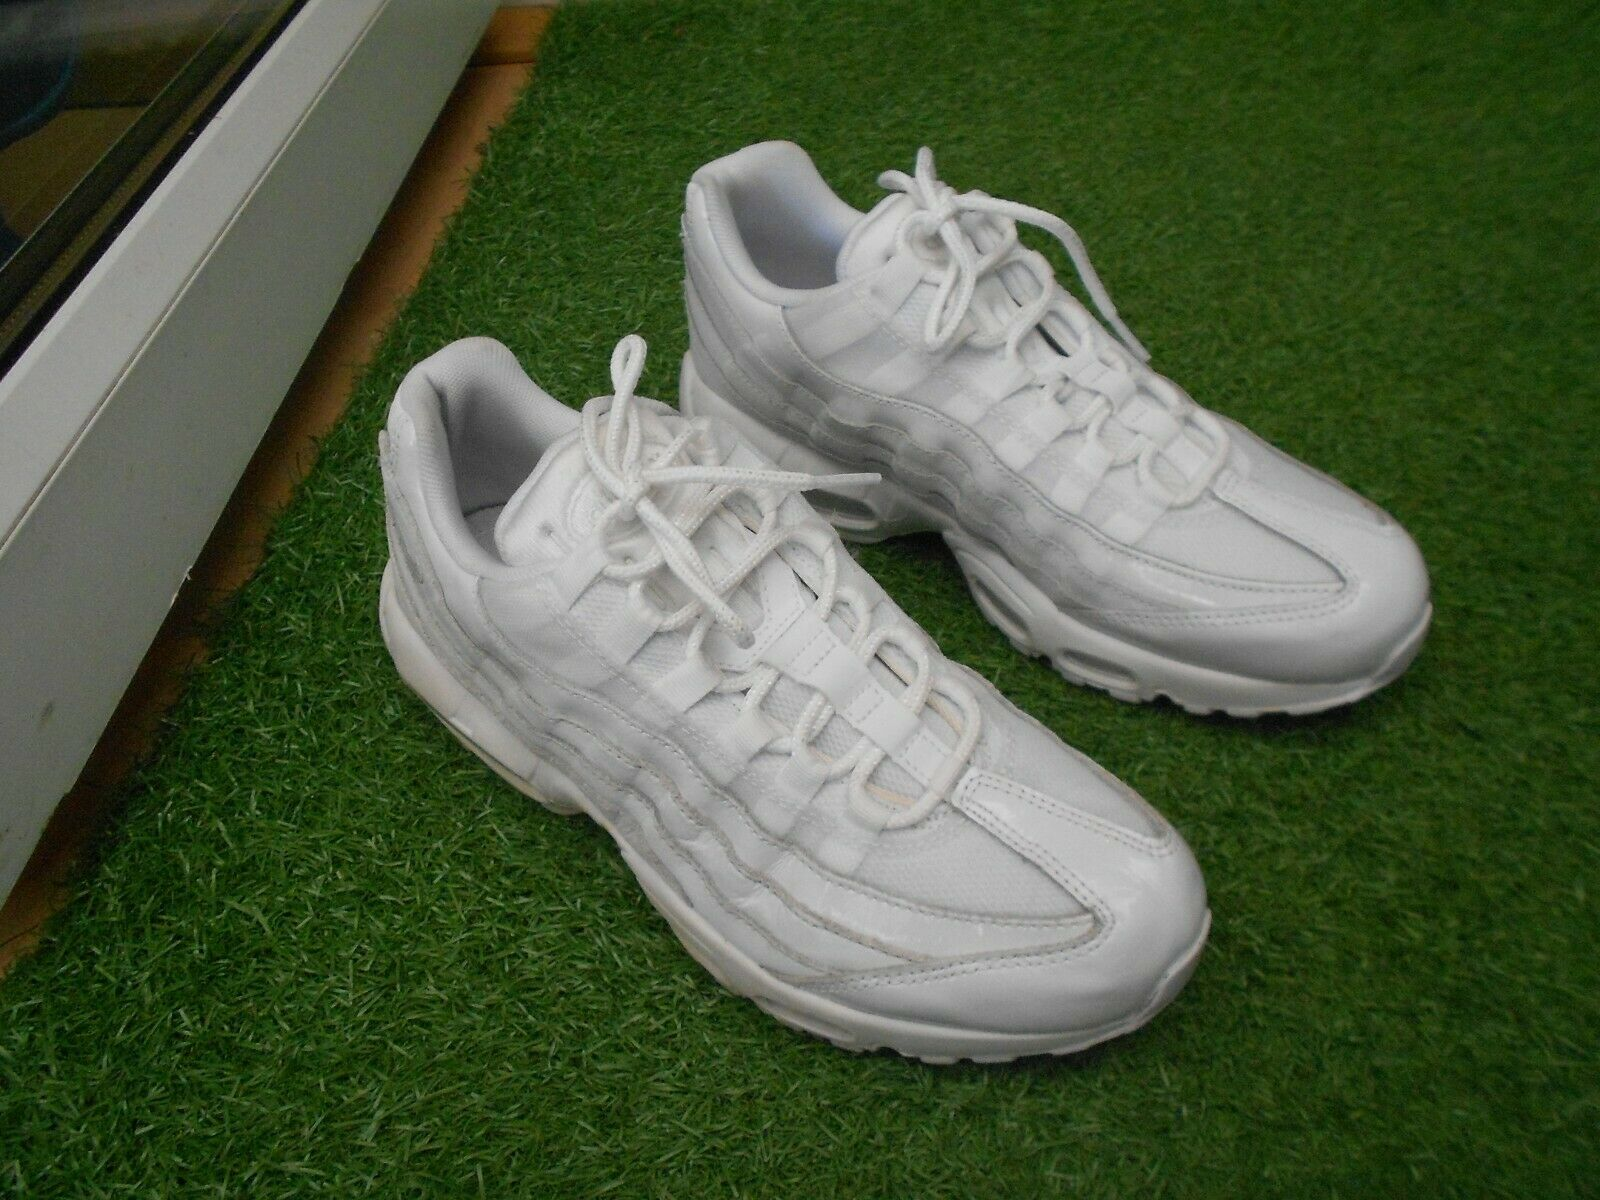 NIKE AIR MAX 95  TRAINERS UK SIZE 7.5 -  WHITE - IN A GOODISH COND STILL  excellent prices